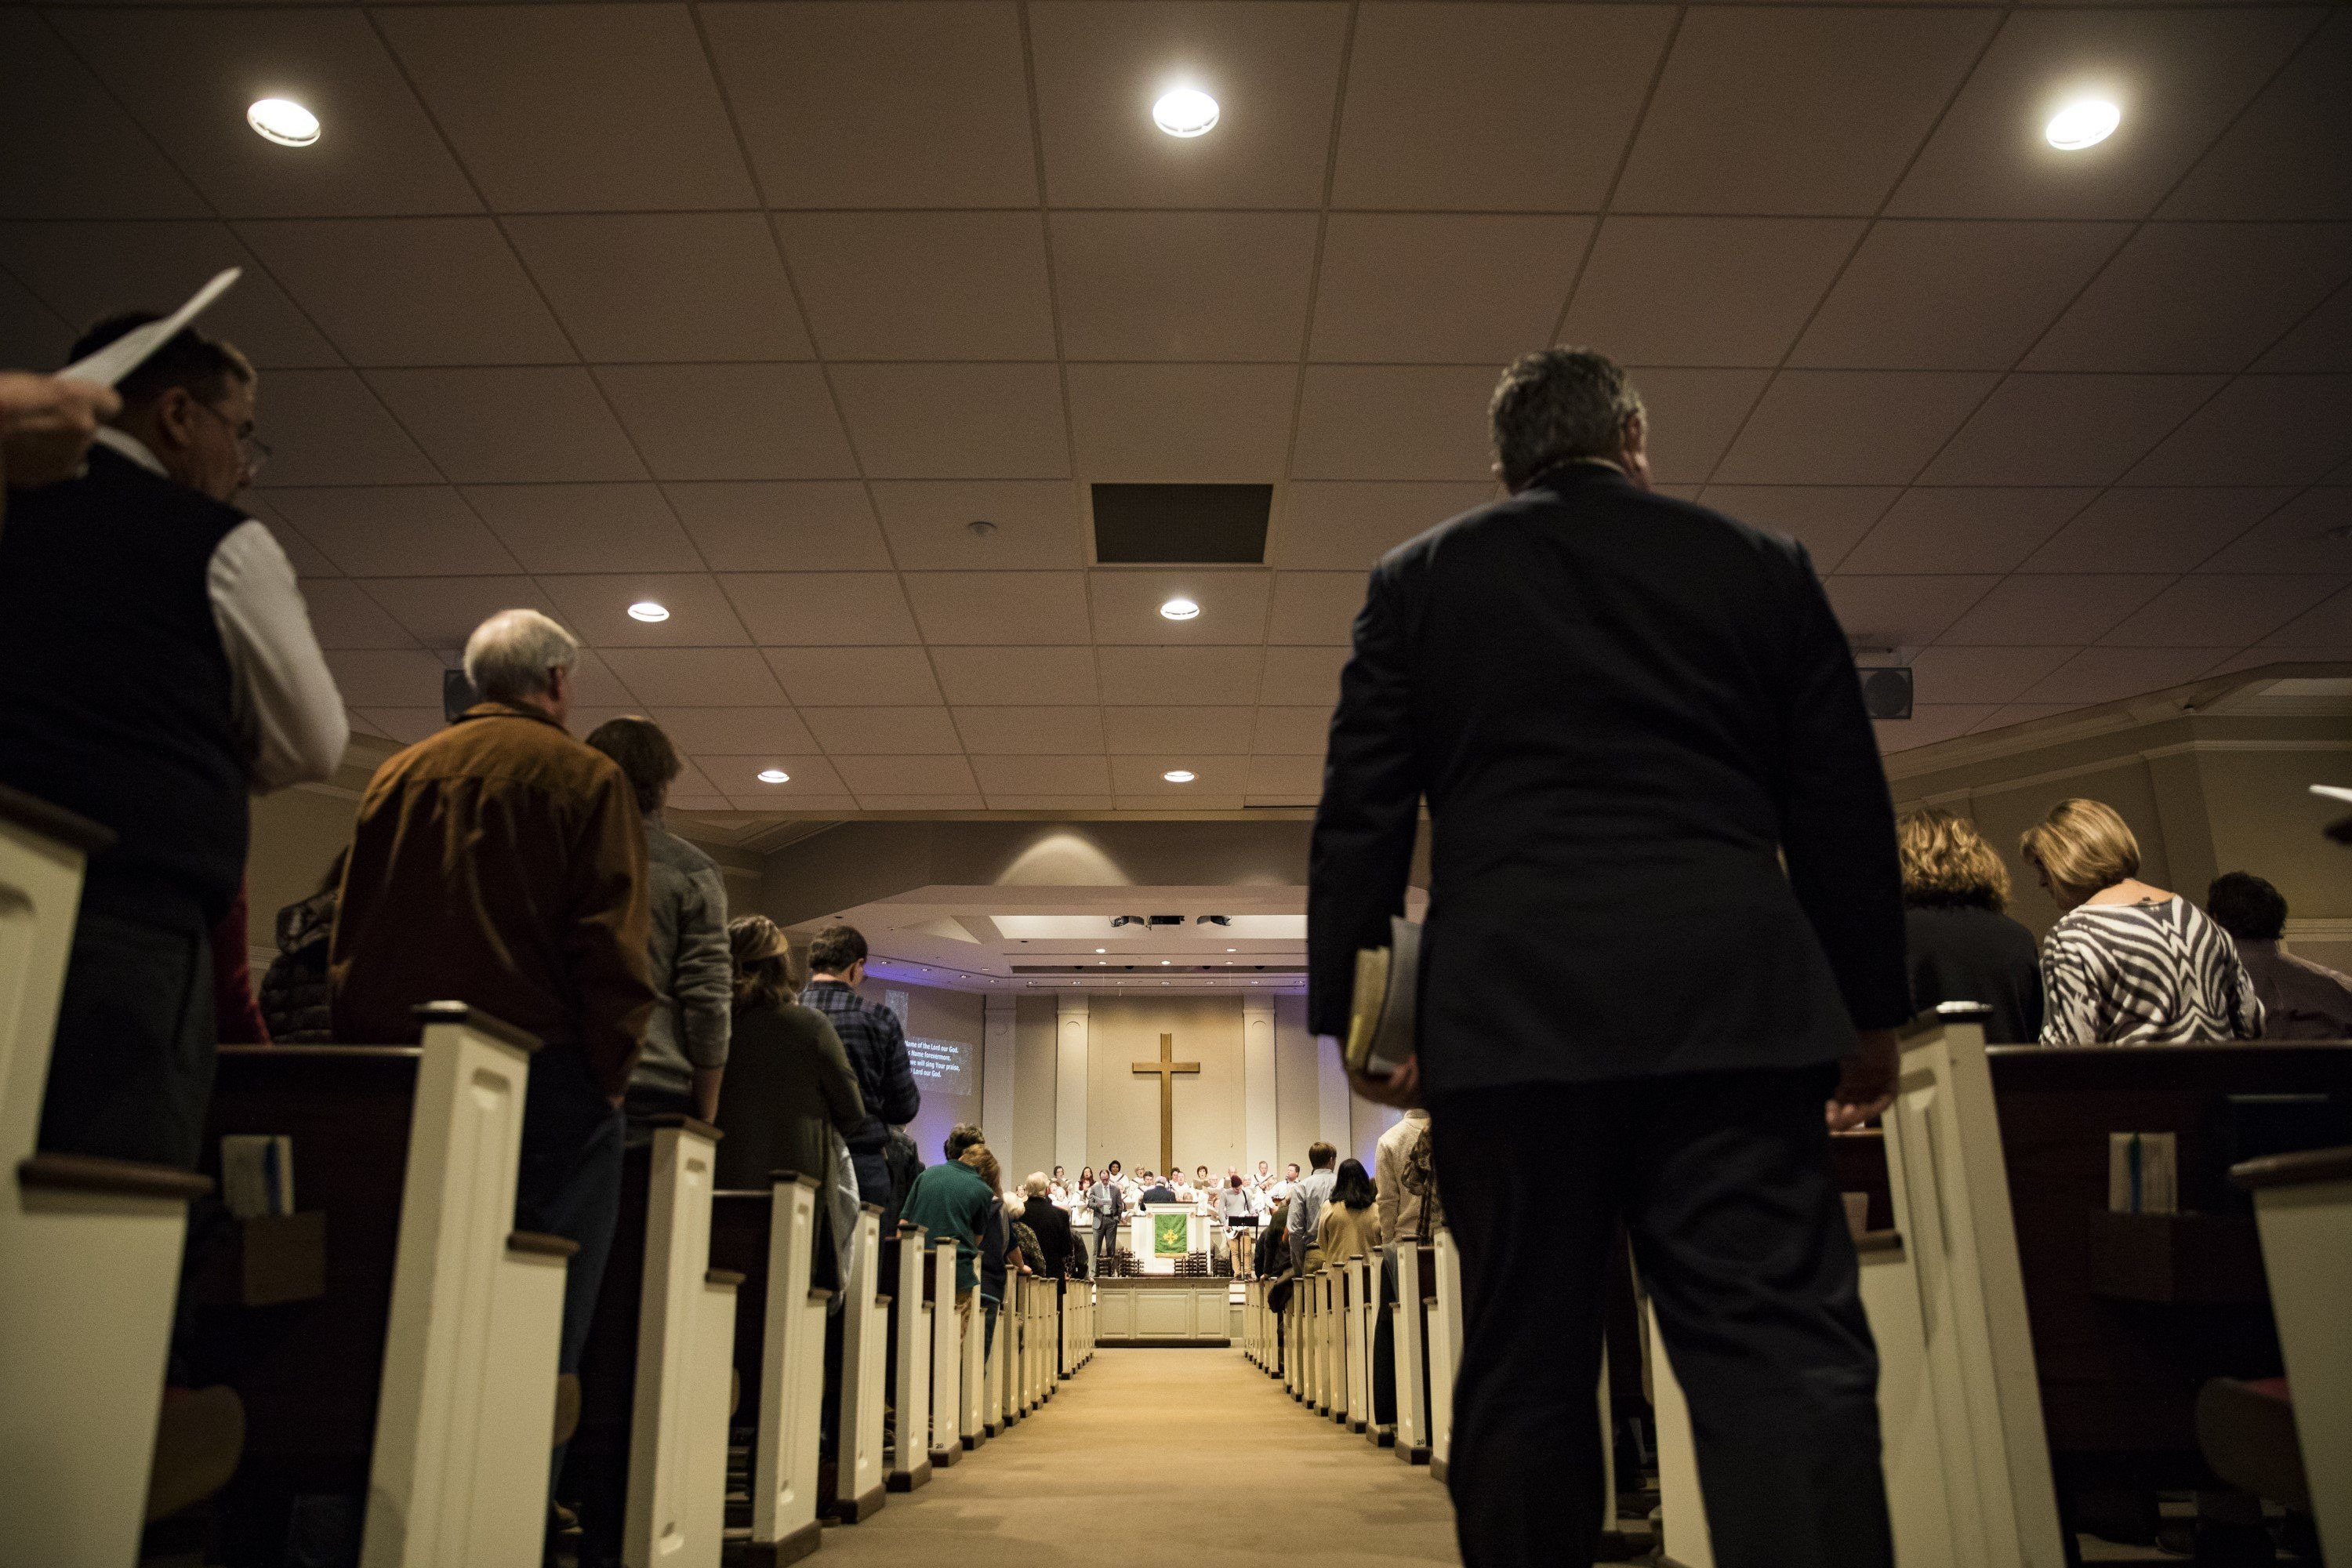 TENNESSEE, USA - JANUARY 07: Evangelical Christians gather for Sunday worship service at First Evangelical Church in Memphis, Tennessee, United States on January 07, 2018. (Photo by Samuel Corum/Anadolu Agency/Getty Images)